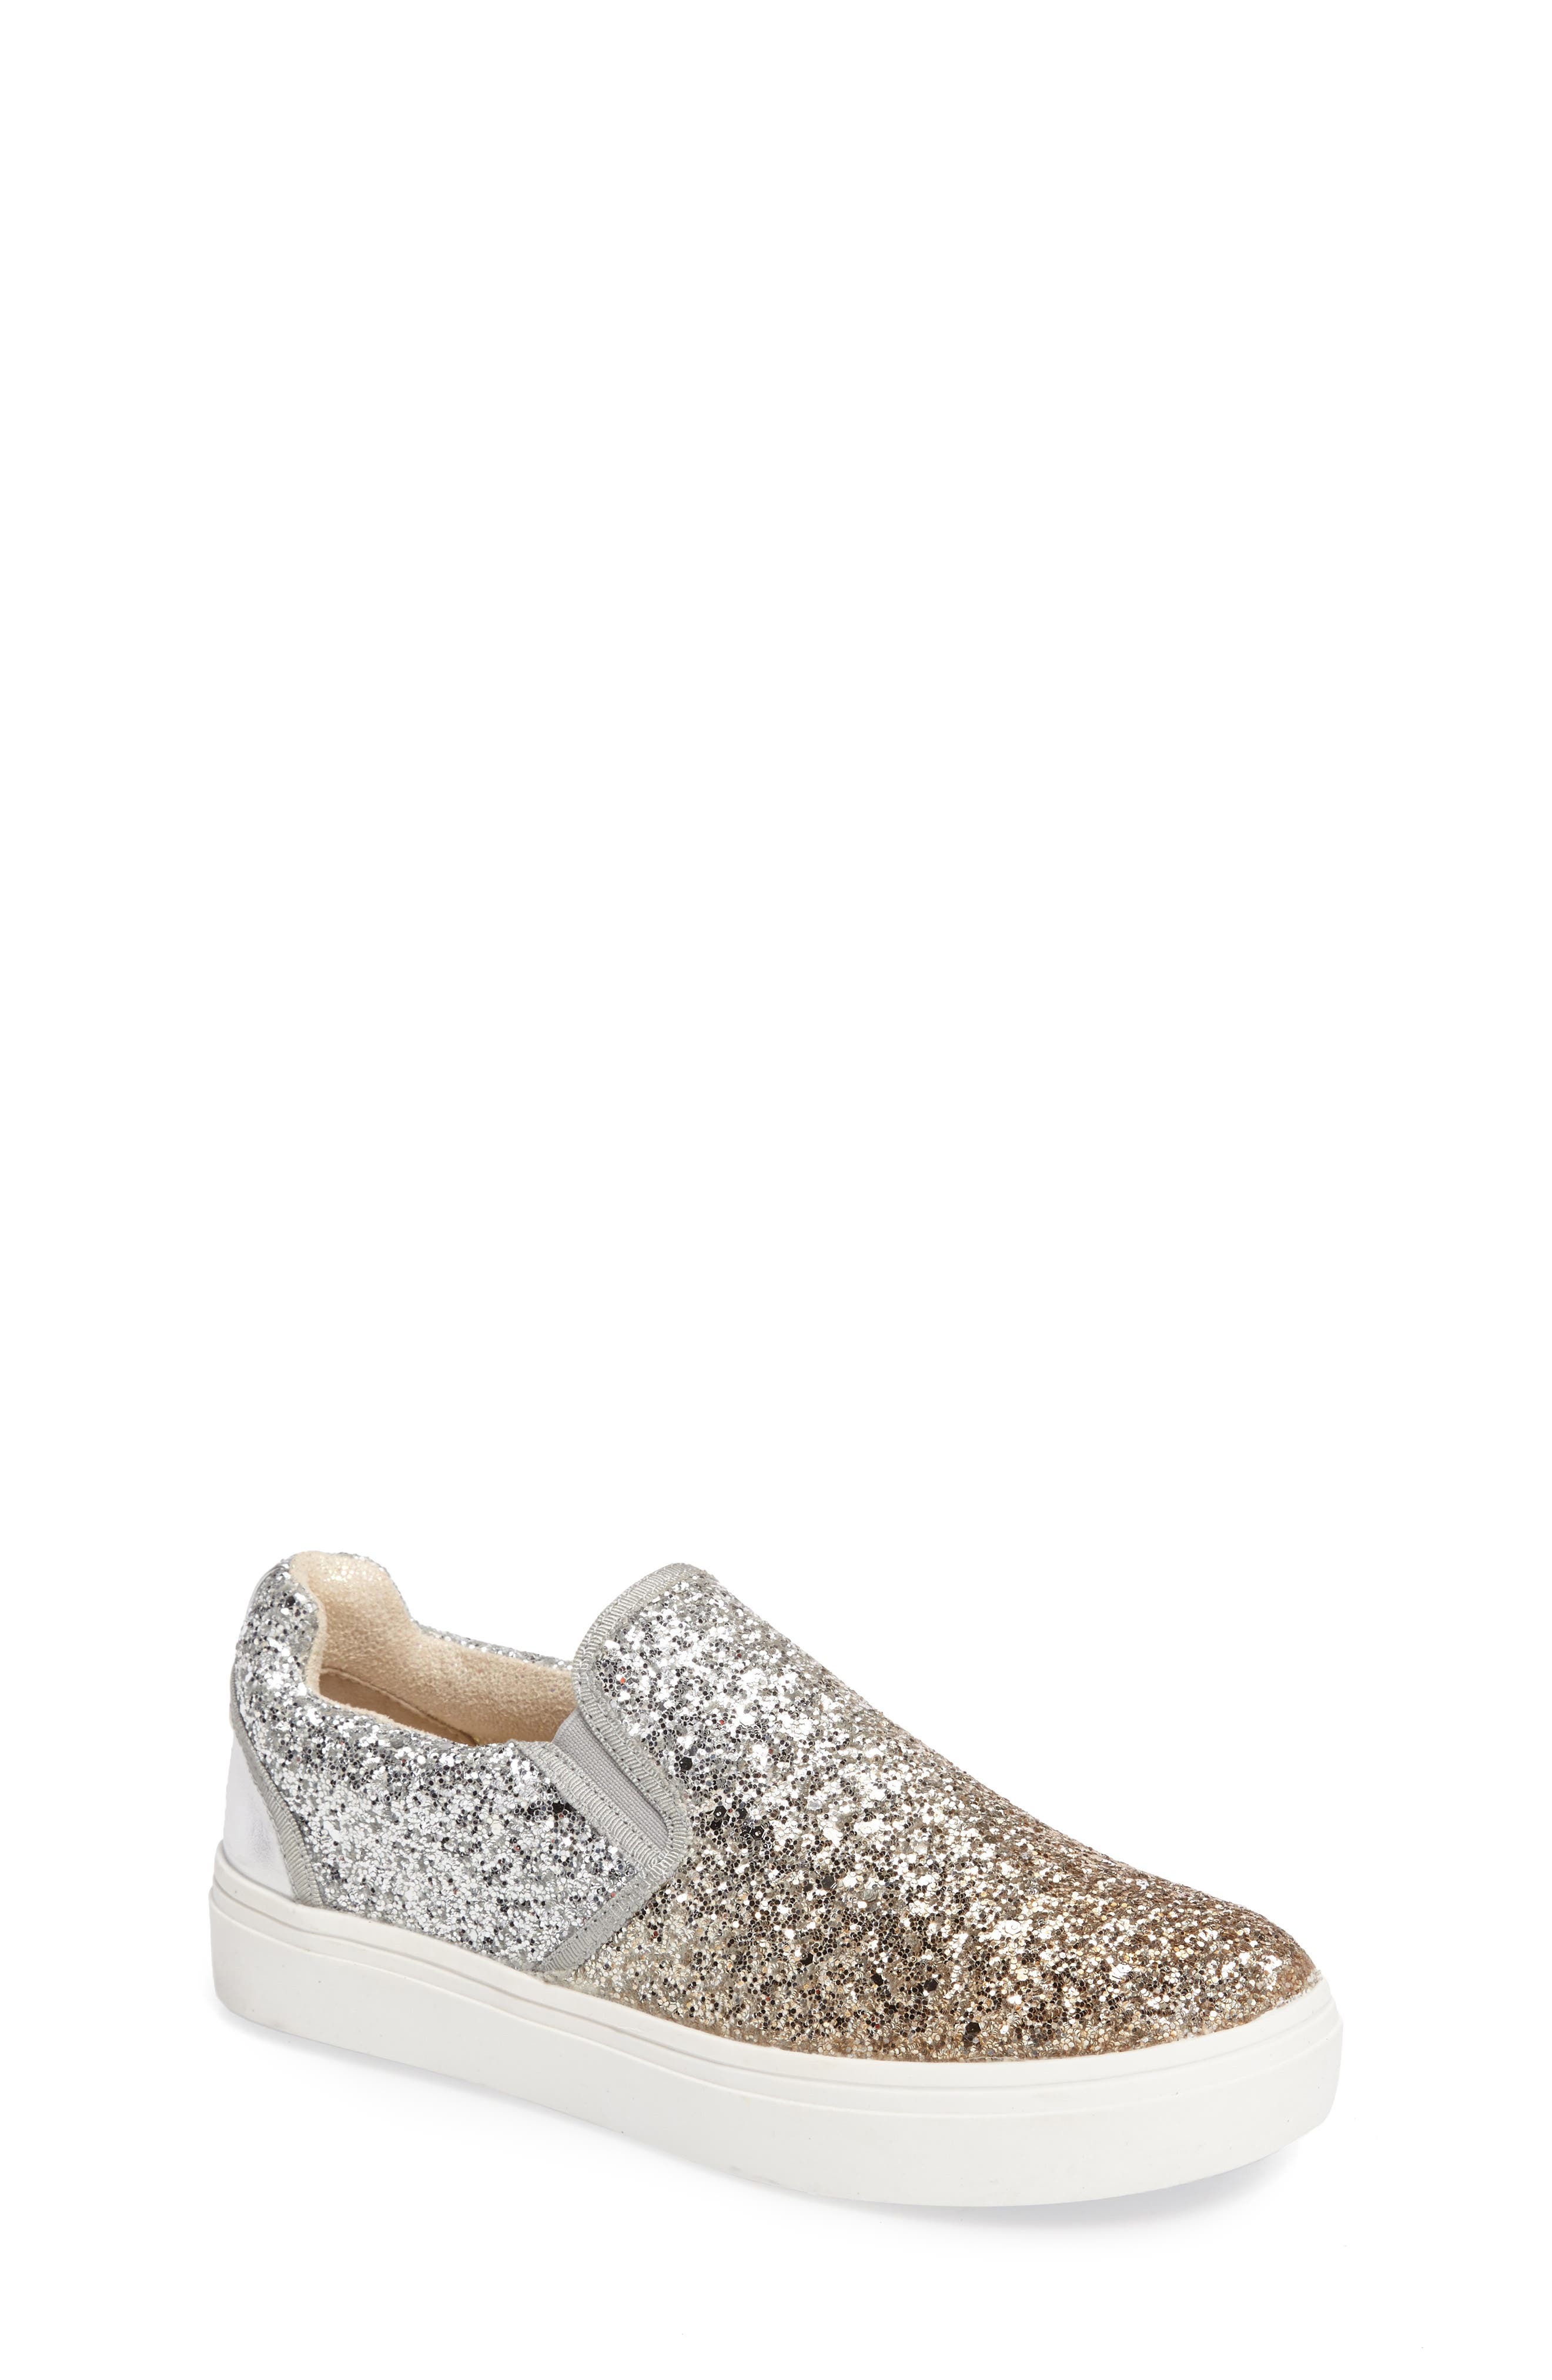 Double Marcia Glitter Platform Sneaker,                         Main,                         color, Silver/ Gold